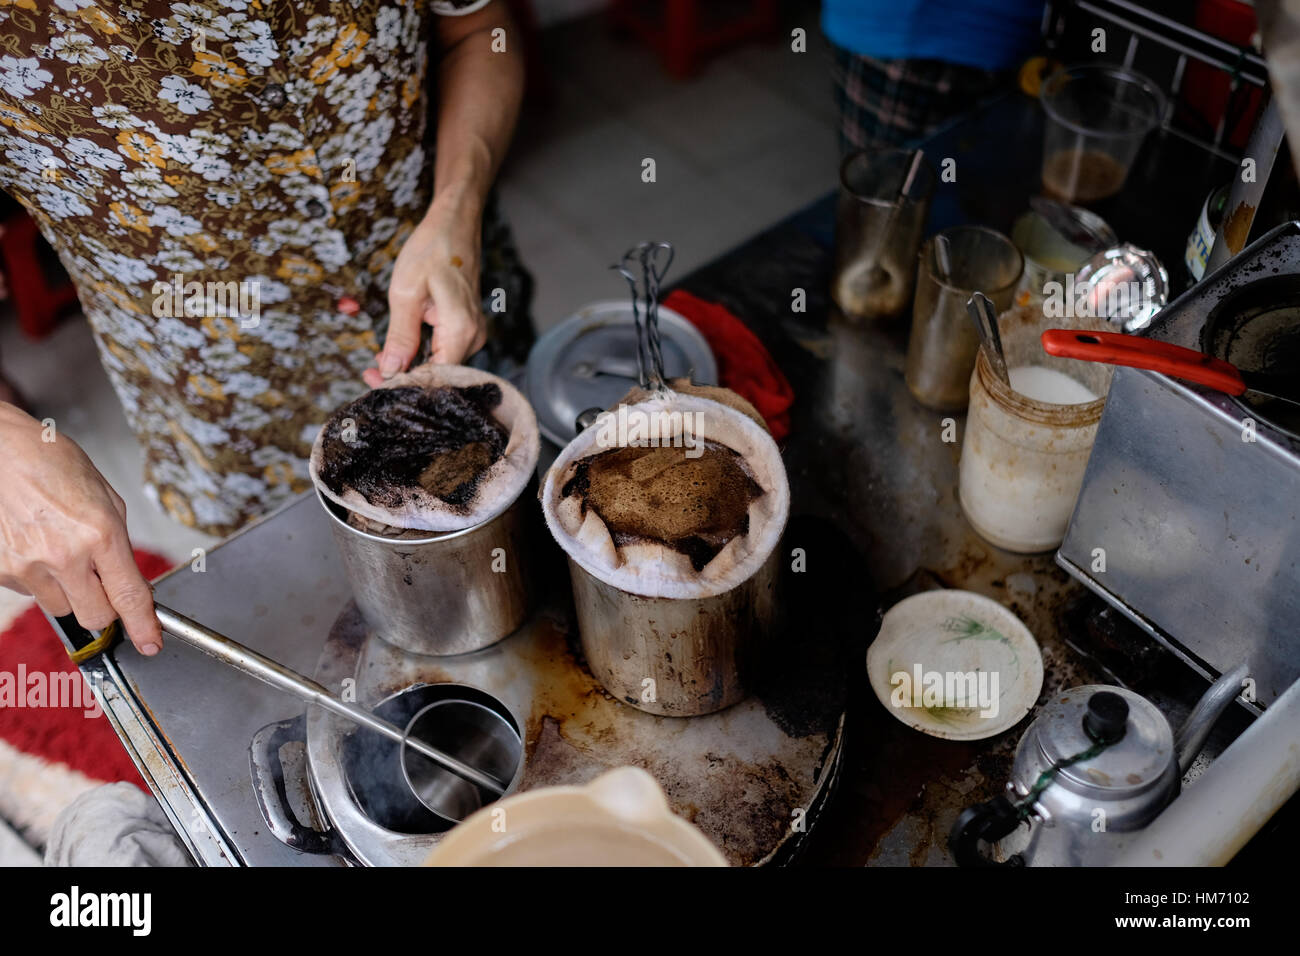 Phan Dinh Phung street, Ho Chi Minh city, Viet Nam - FEB 7: Unidentified woman with private business at home by - Stock Image